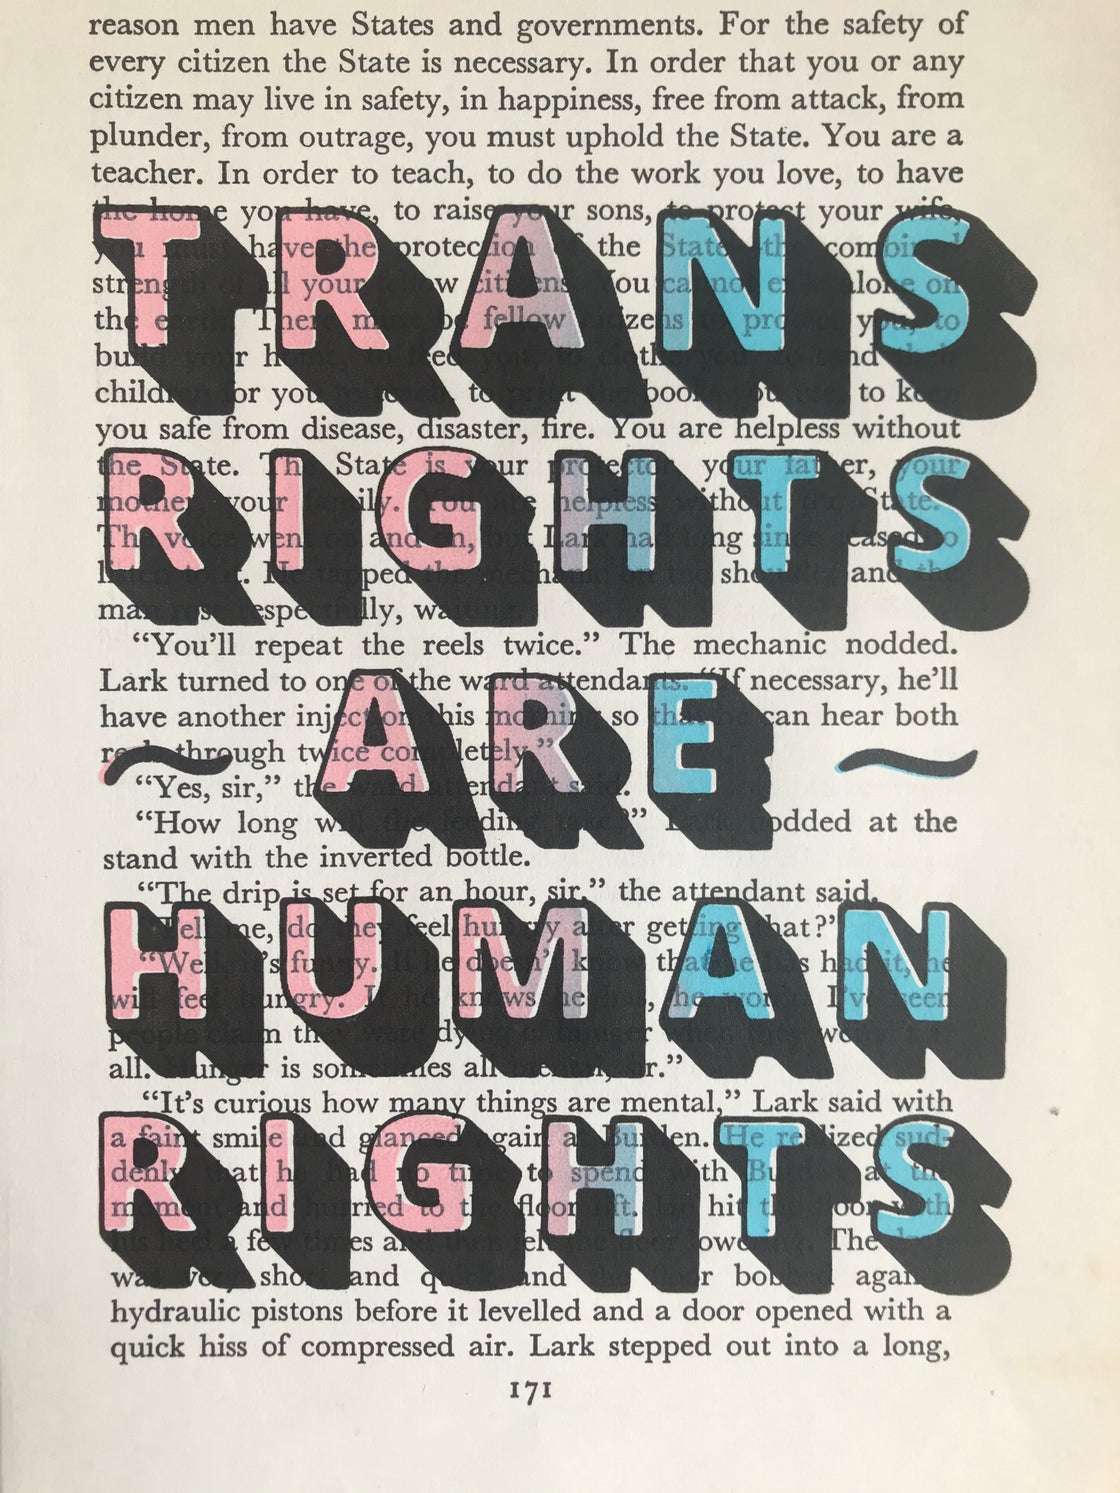 Image of Trans Rights Are Human Rights X2